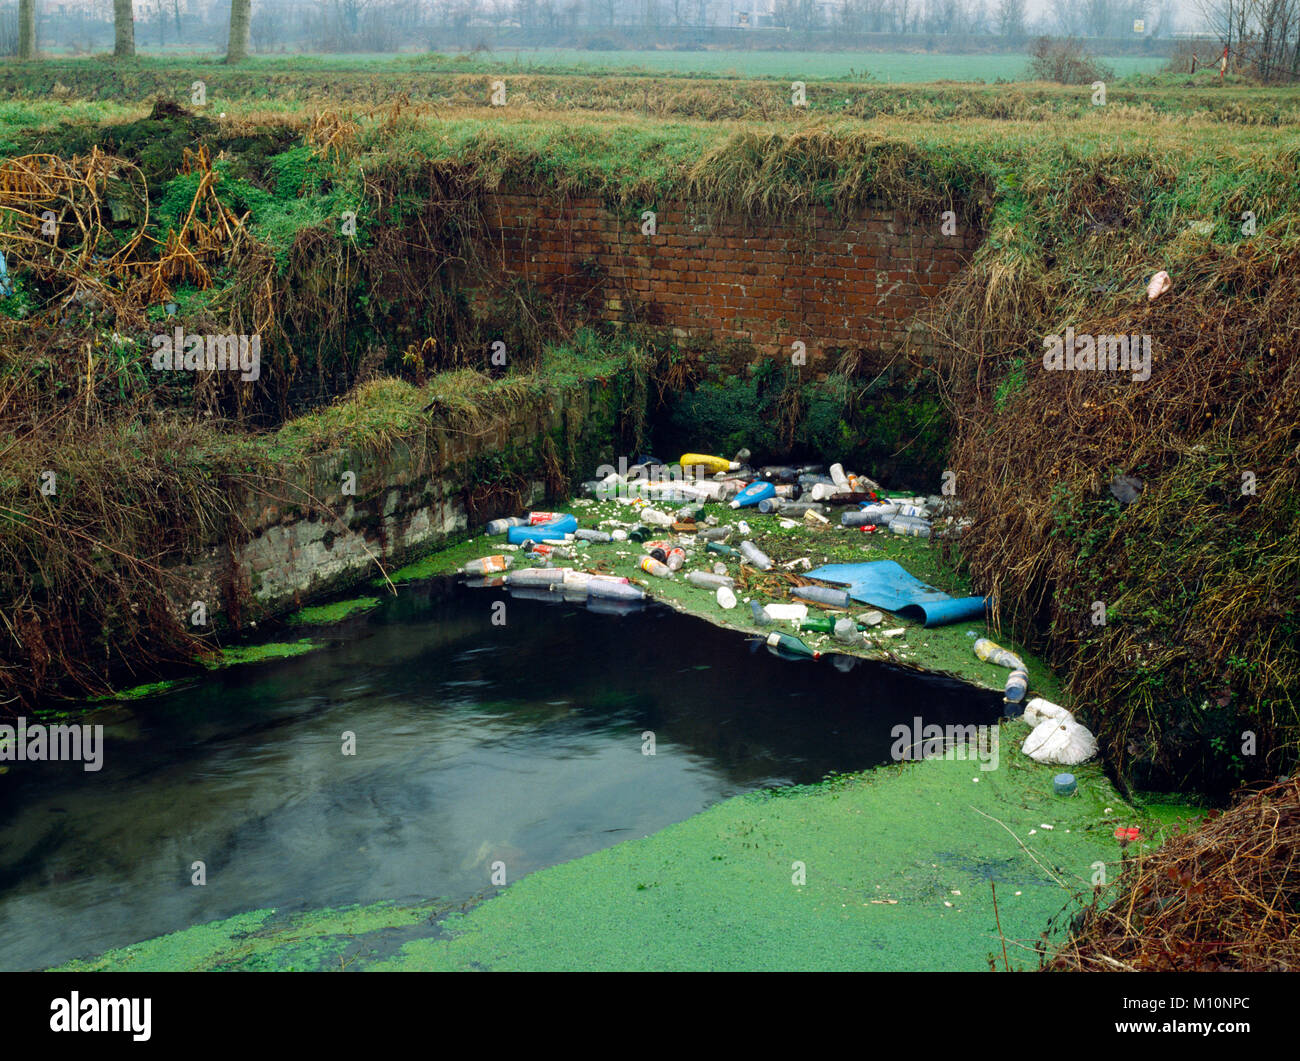 Italy, Lombardy, Provincie of Cremona, Water Pollution - Stock Image